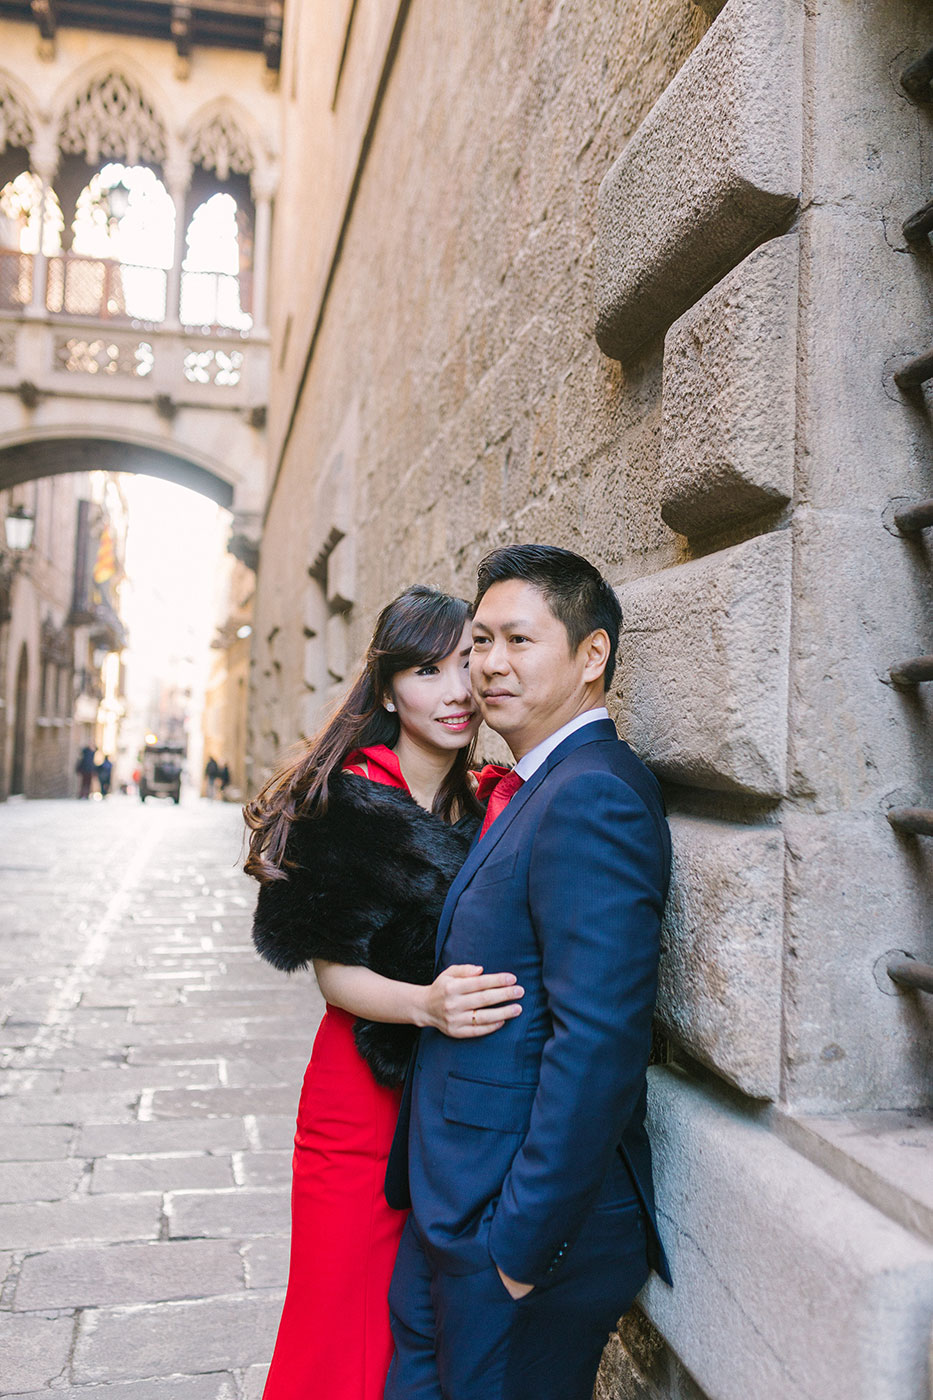 Barcelona Gothic quarter engagement photography | Barcelona Wedding Photographer | Lena Karelova Photography | Barcelona Film Photogrpher